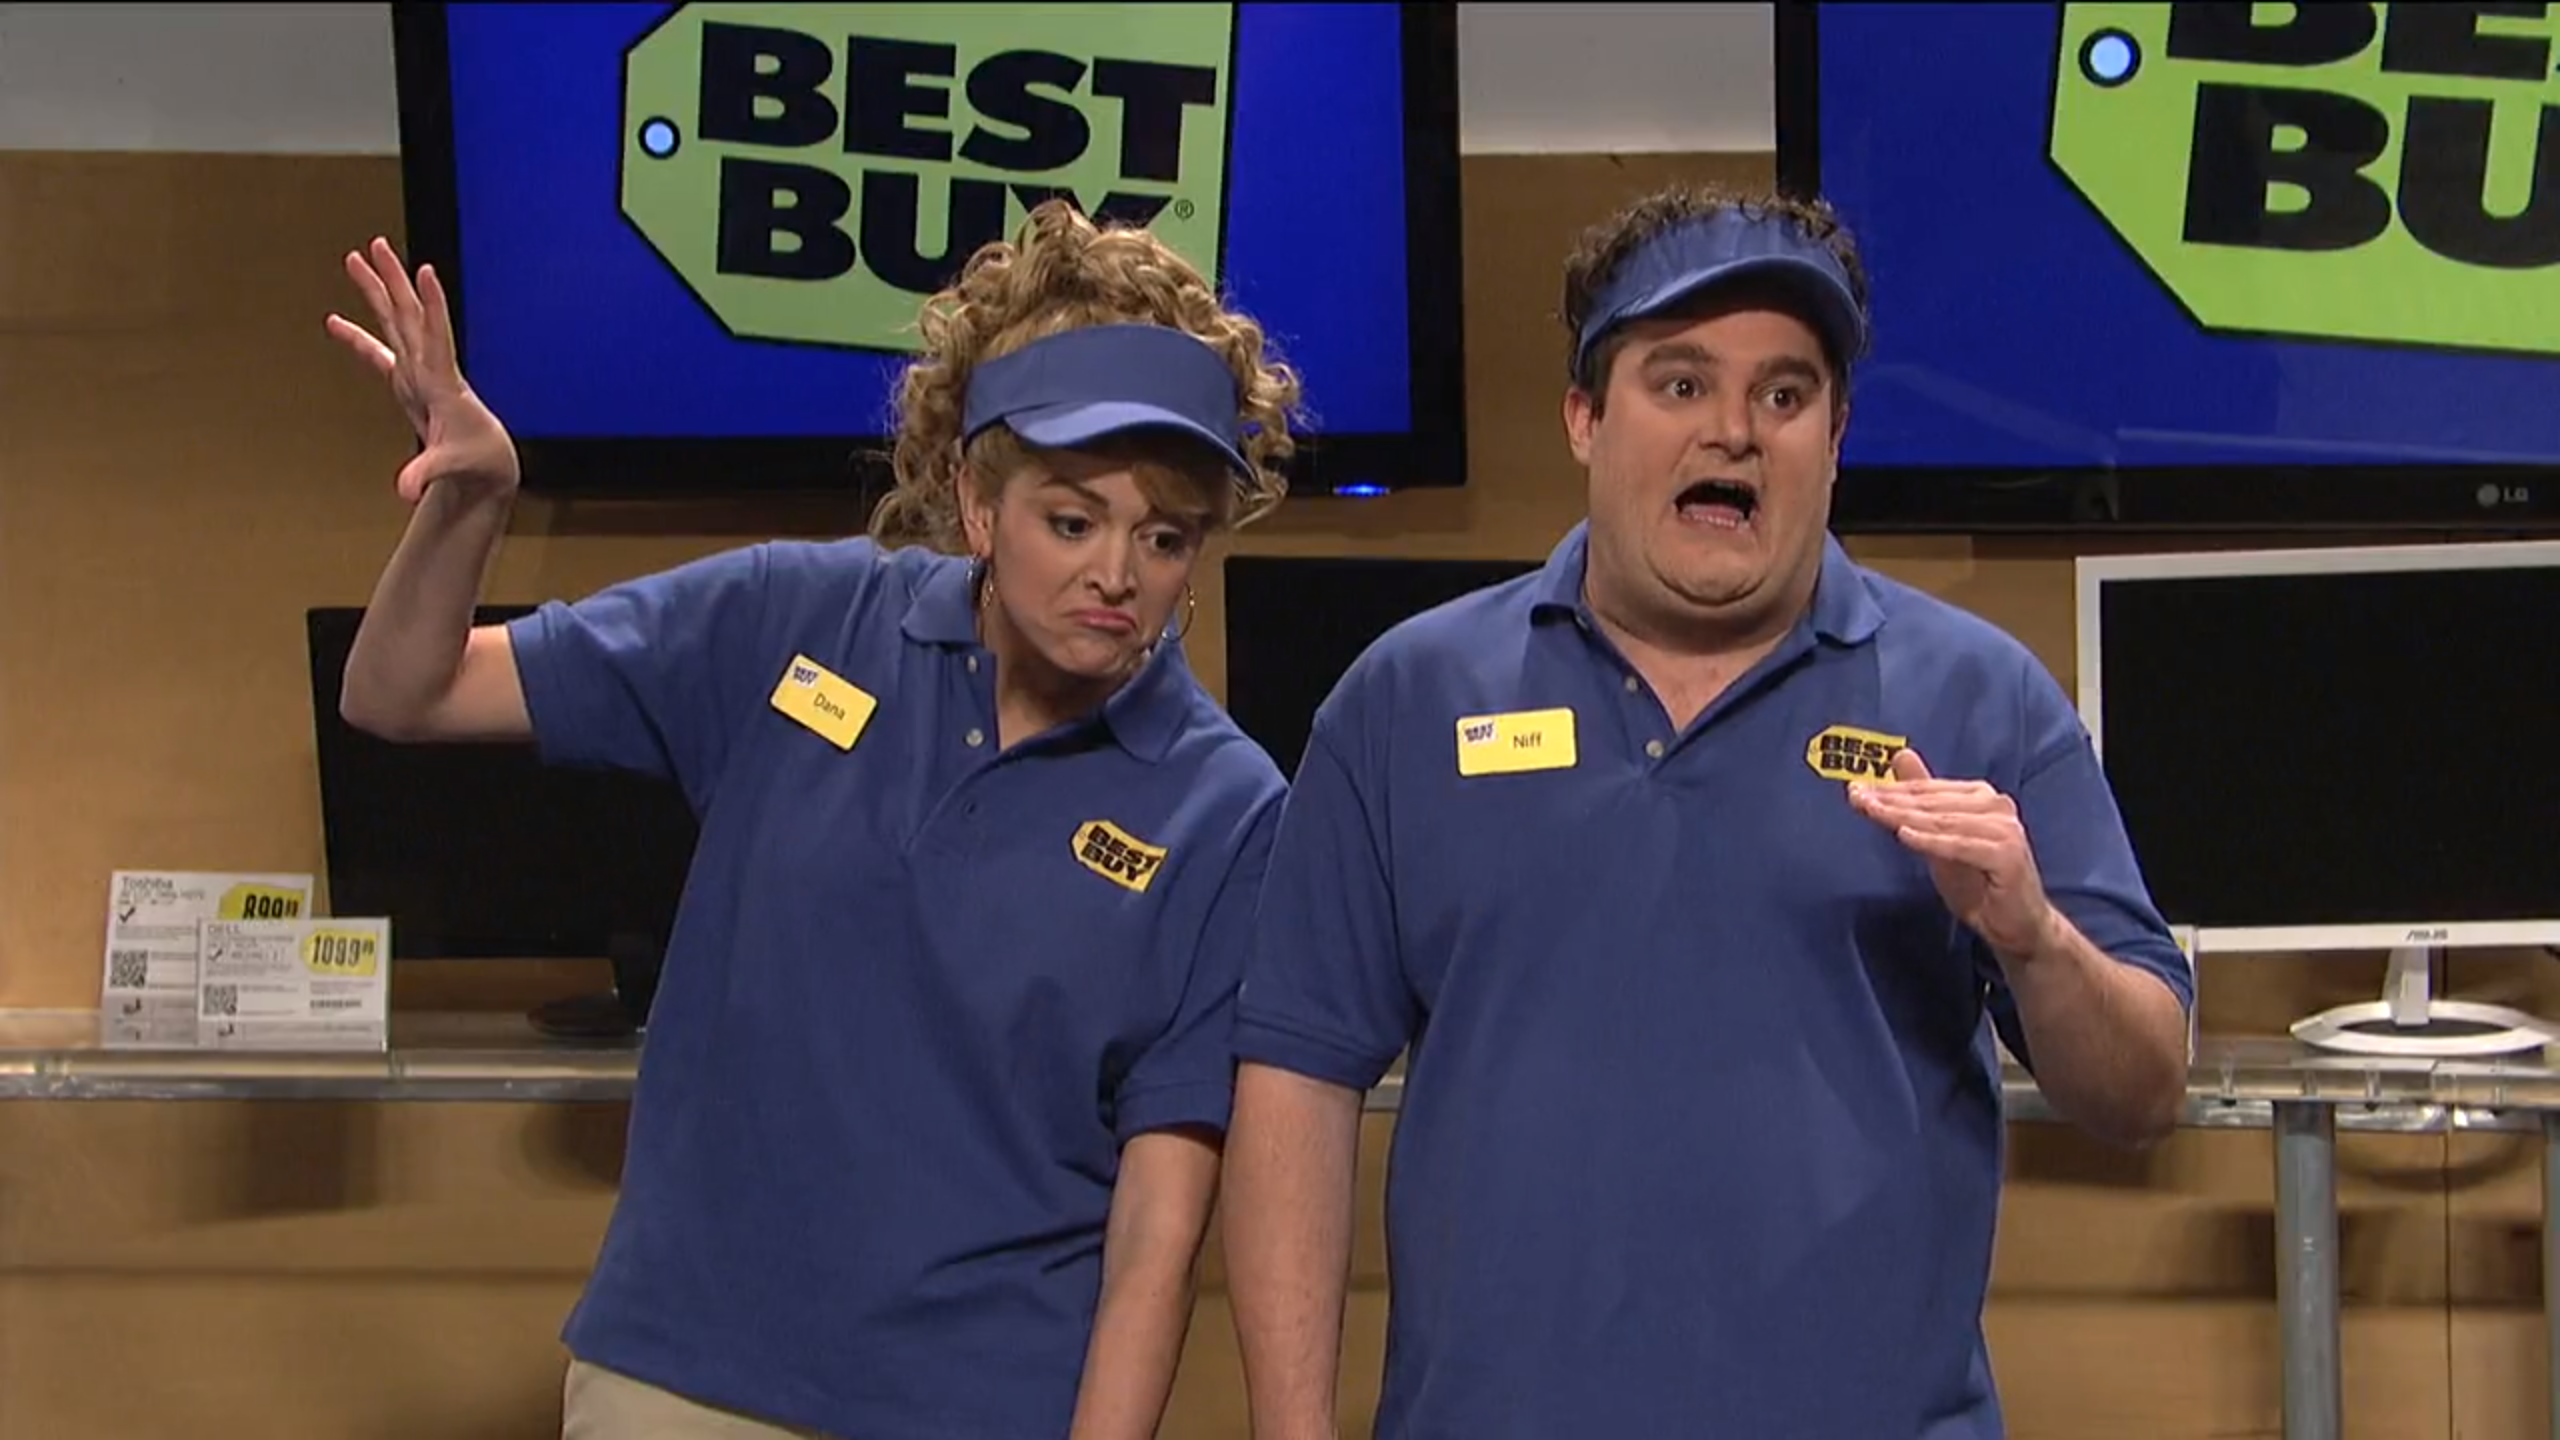 bobby moynihan's best 'snl' sketch is 'best buy firing' | indiewire